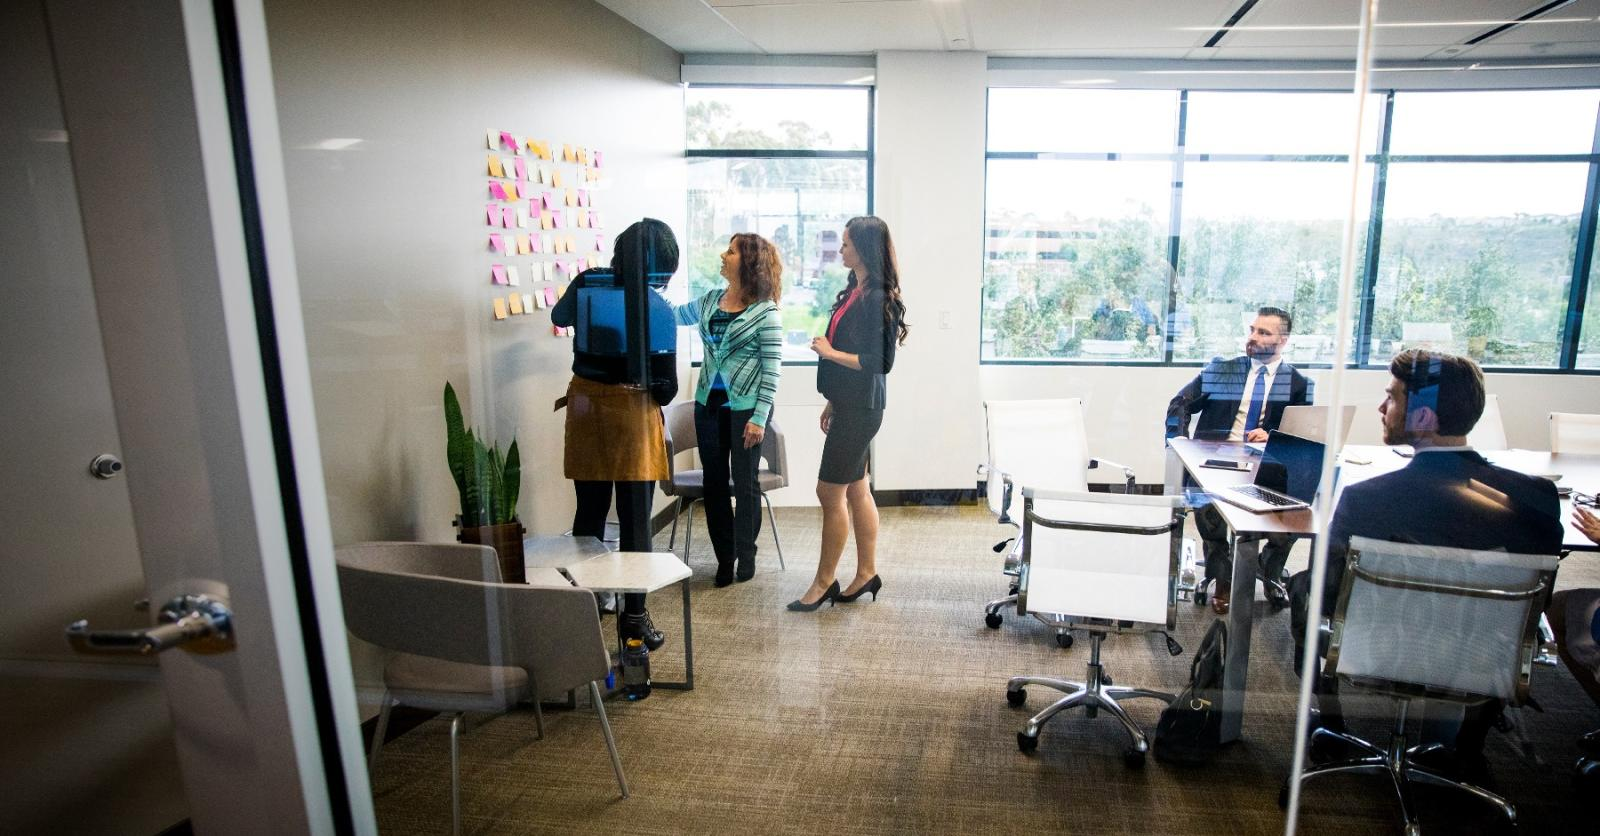 Moving to Agile? Learn how to adapt your Change Management practice.